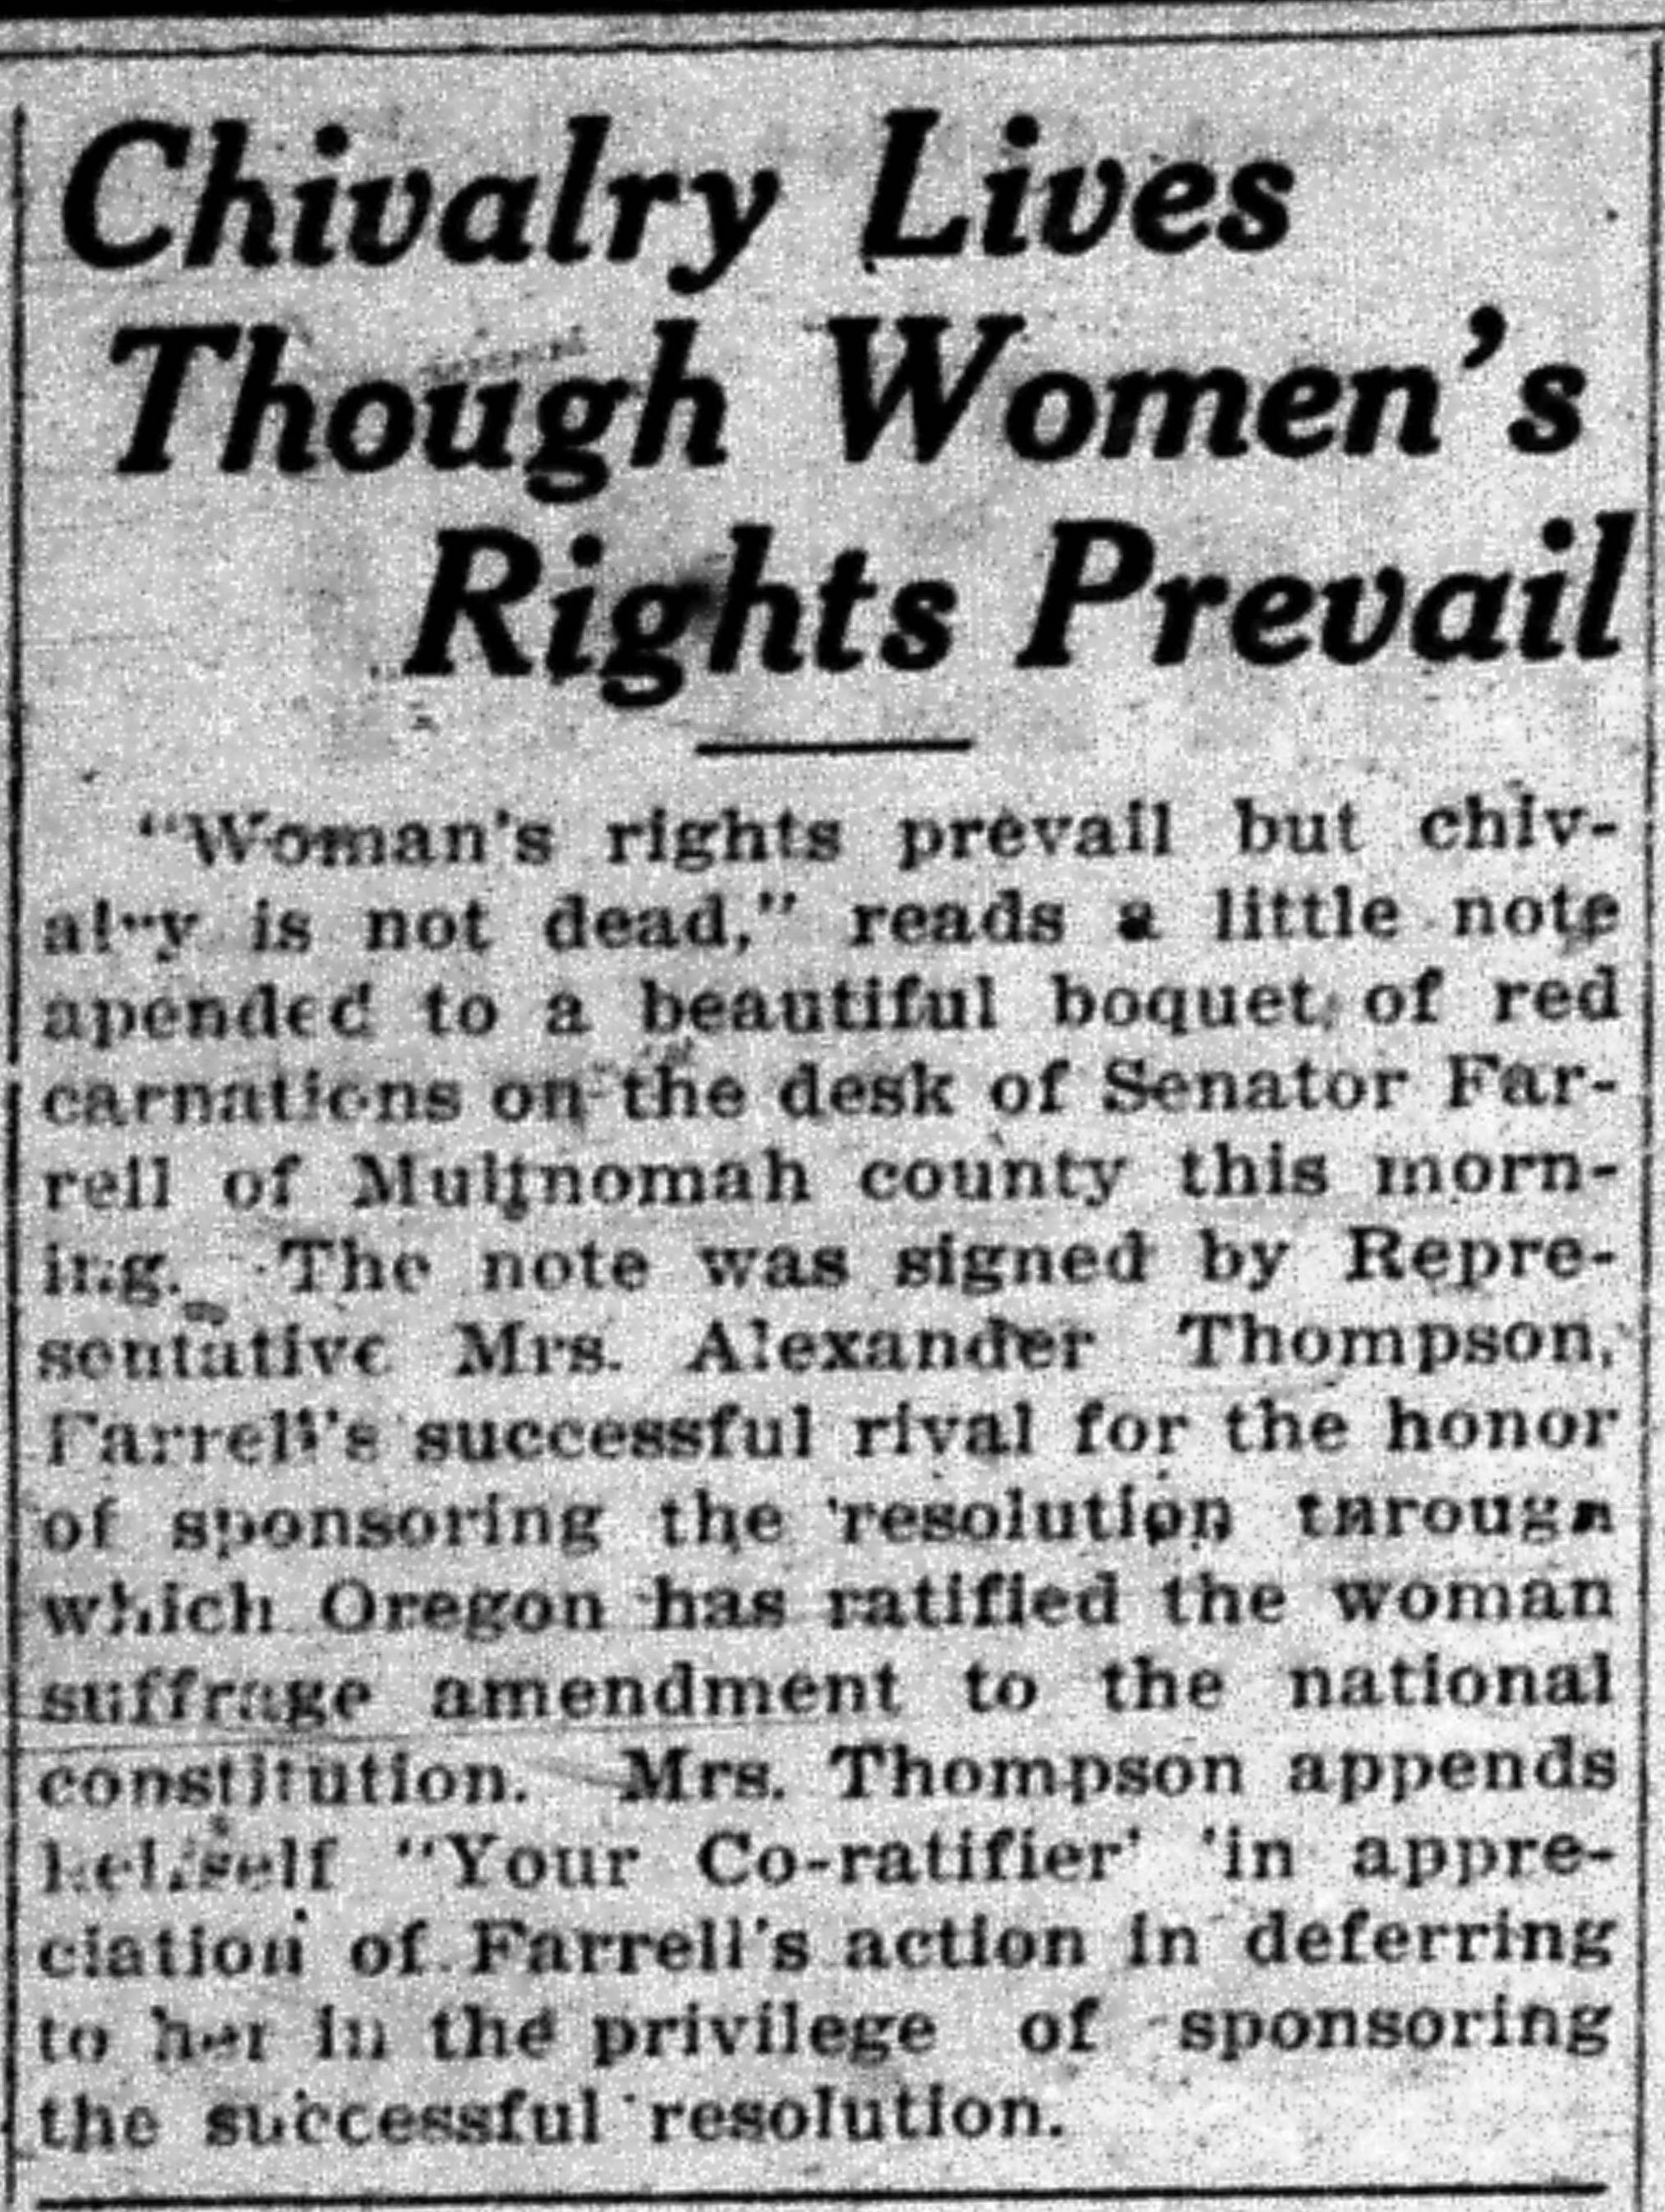 """Chivalry Lives Though Women's Rights Prevail,"" Salem Capital Journal, January 15, 1920, 6."